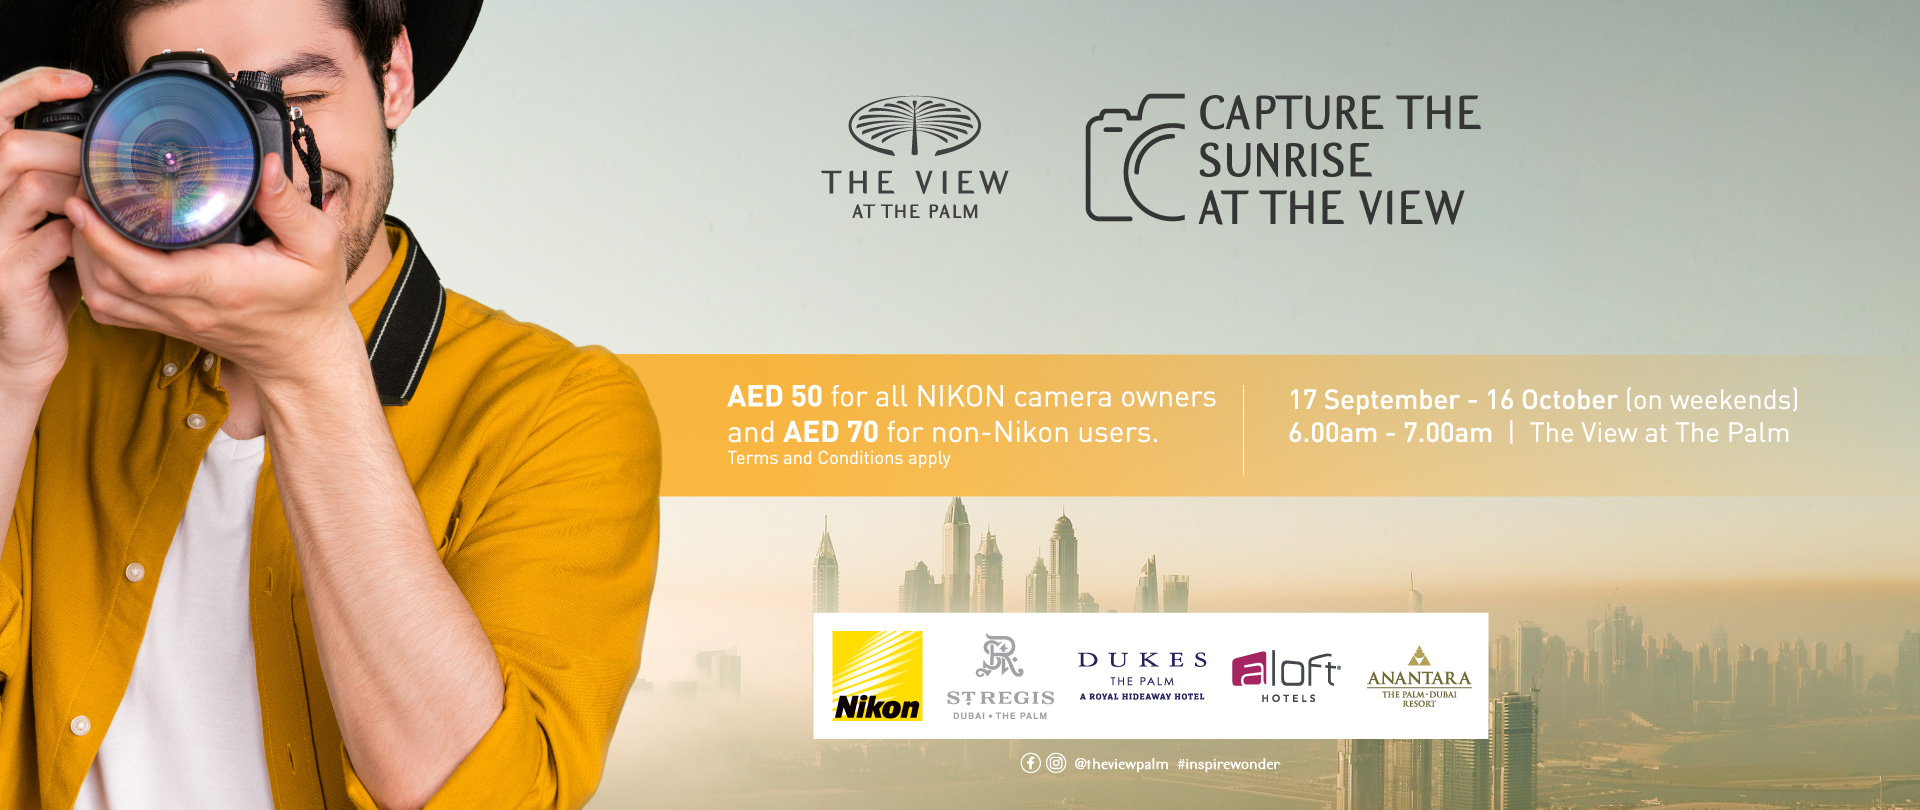 Capture the Sunrise at The view